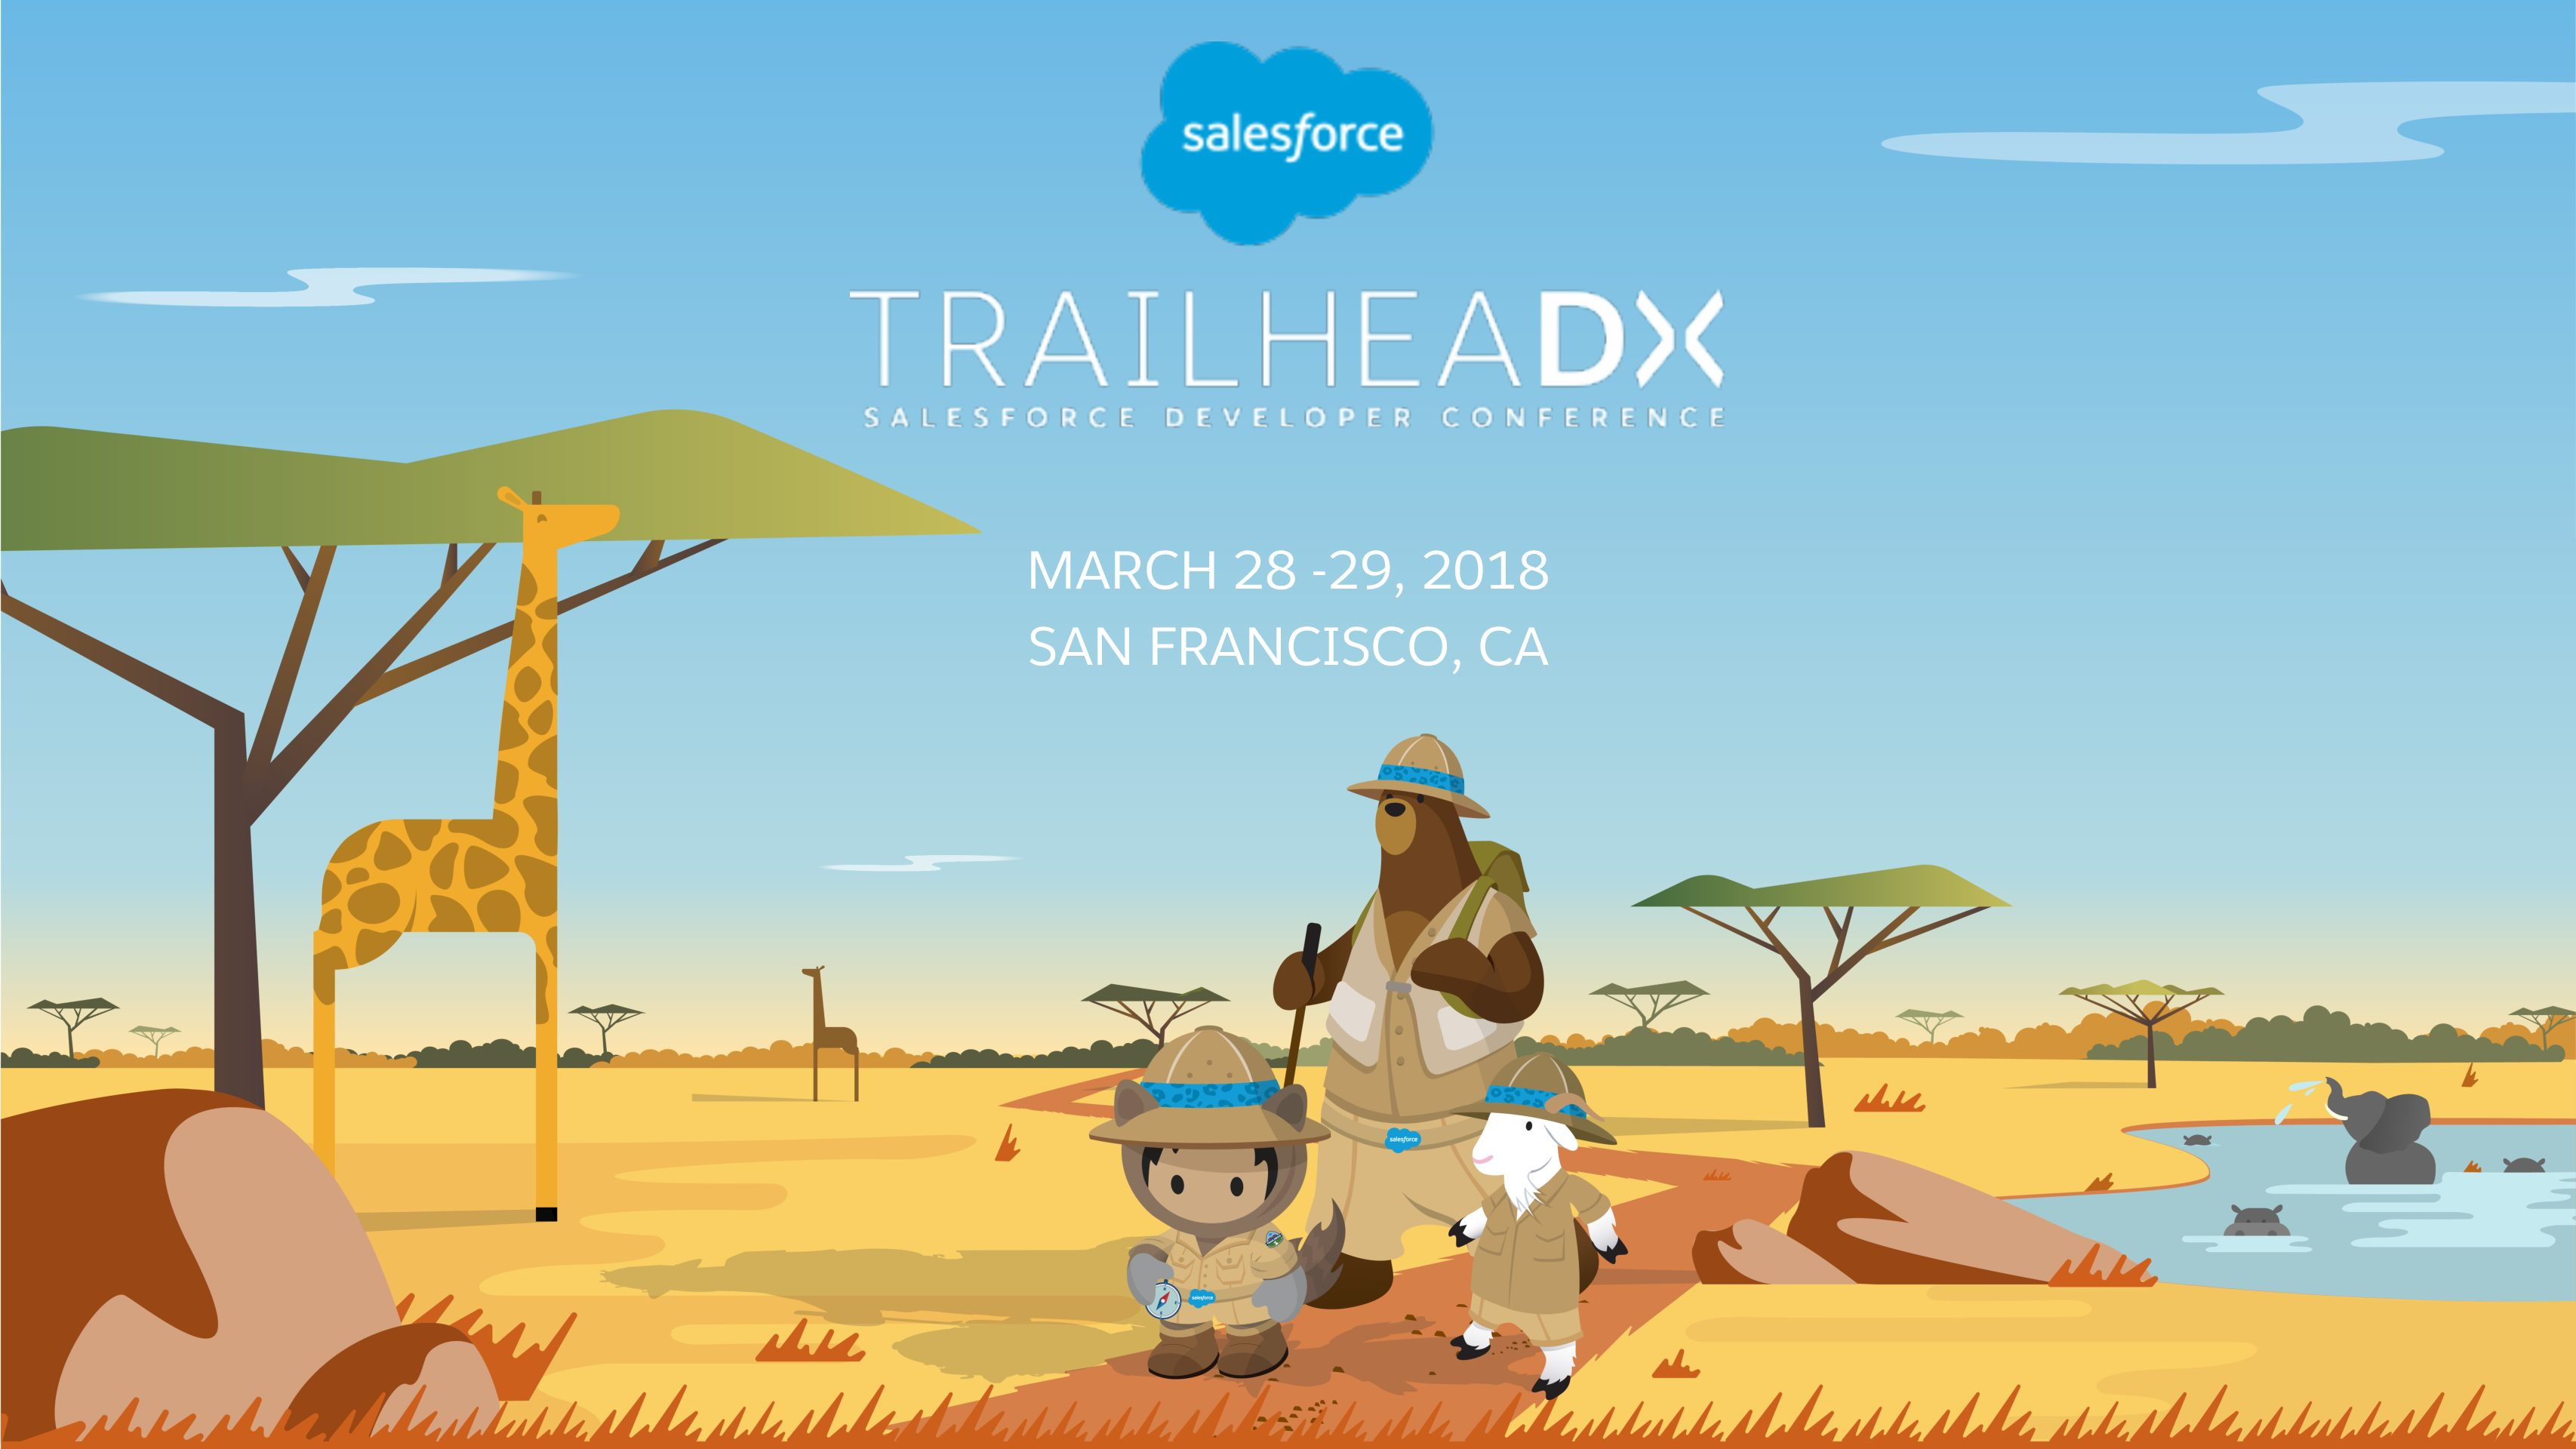 TrailheaDX '18: How Commerce Cloud Aligns to SalesforceDX Development Methodology